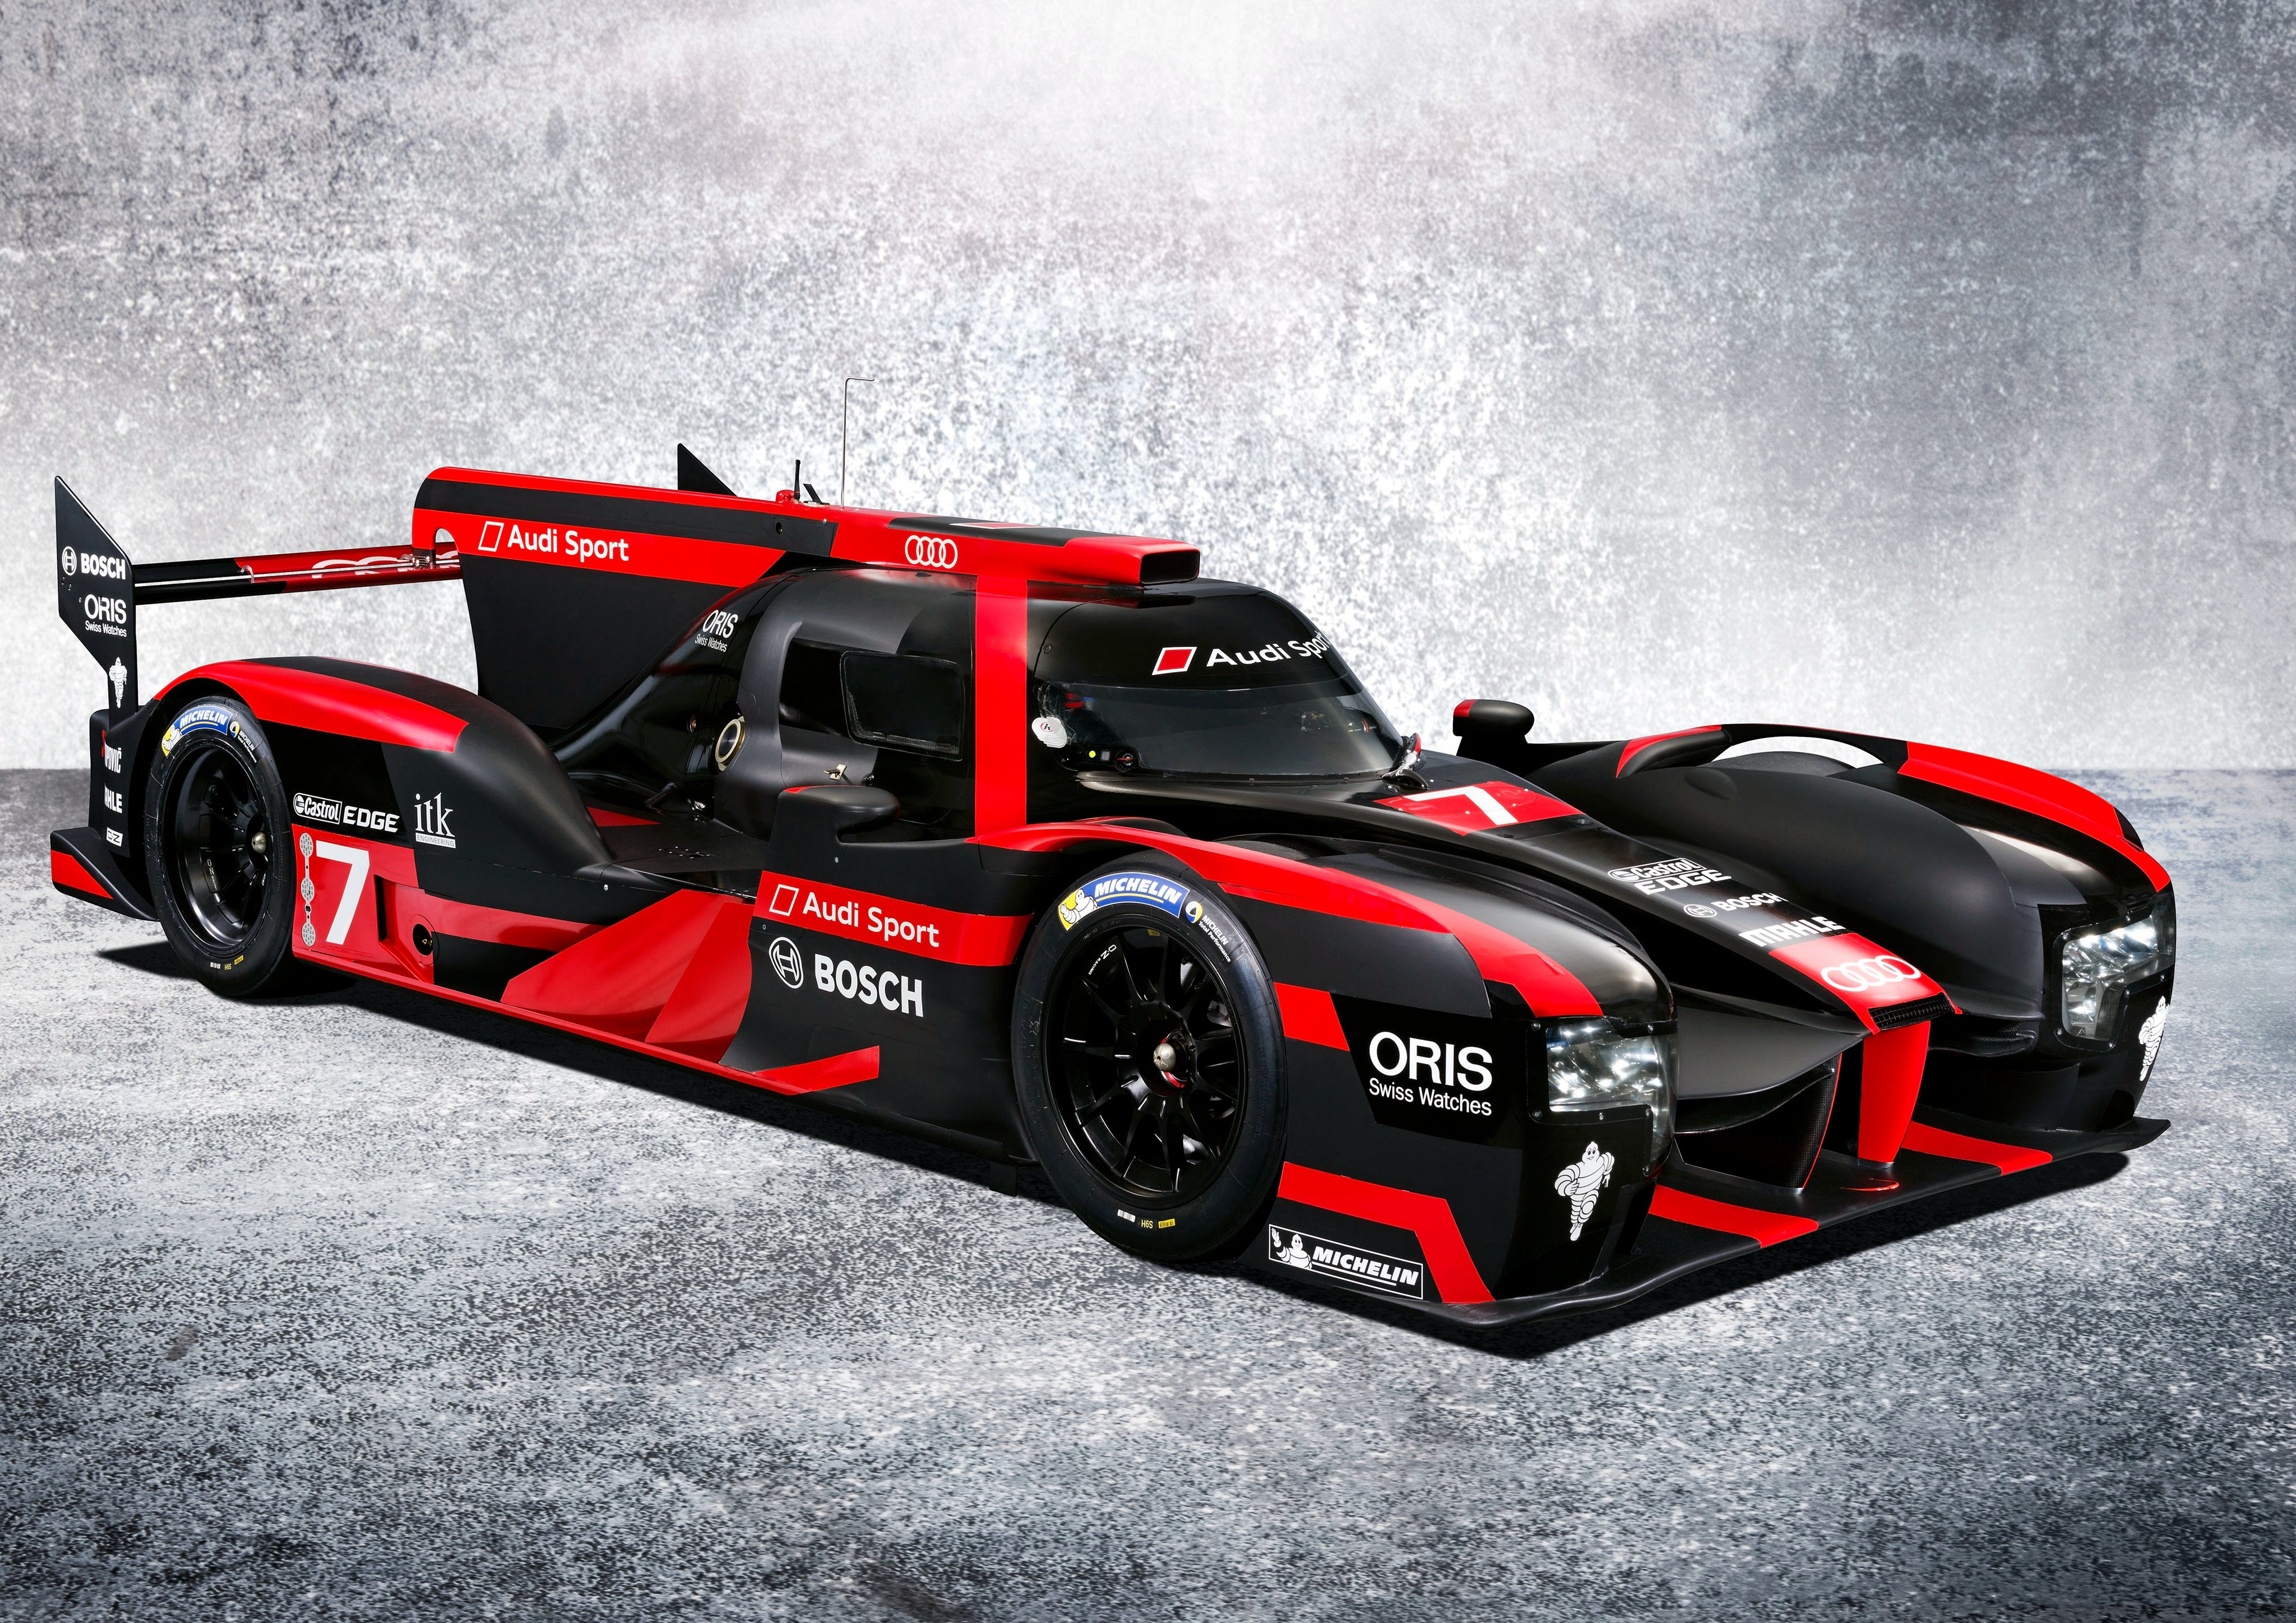 Hybrid Car Lineup Wallpaper 2018 2016 Audi R18 E Tron Quattro Lemans Le Mans Race Racing